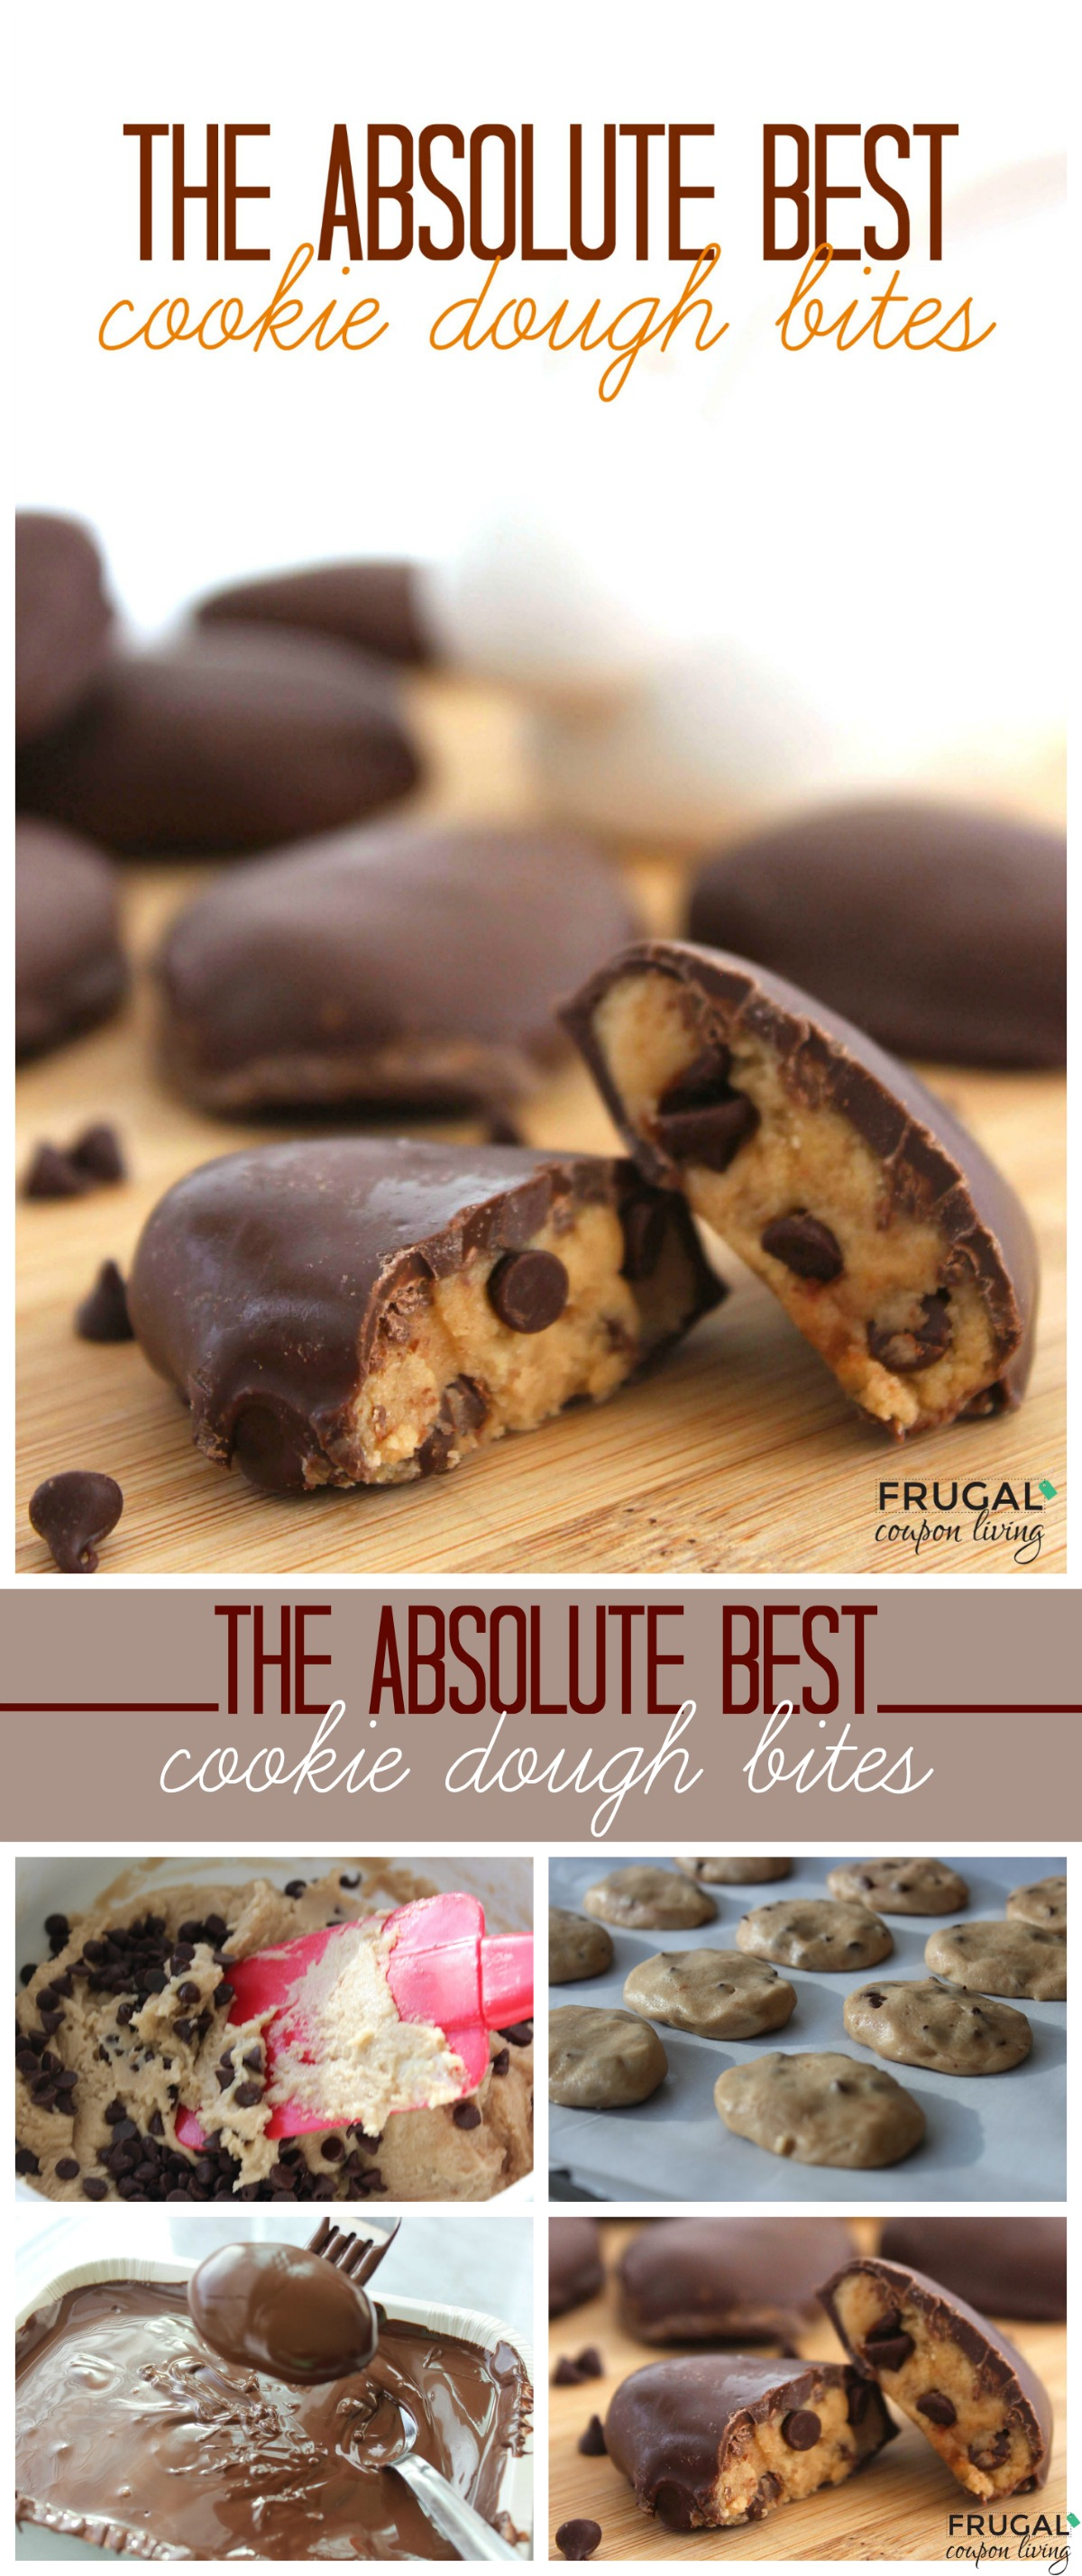 The-Absolute-Best-Cookie-Dough-Bites-Collage-Frugal-Coupon-LIving